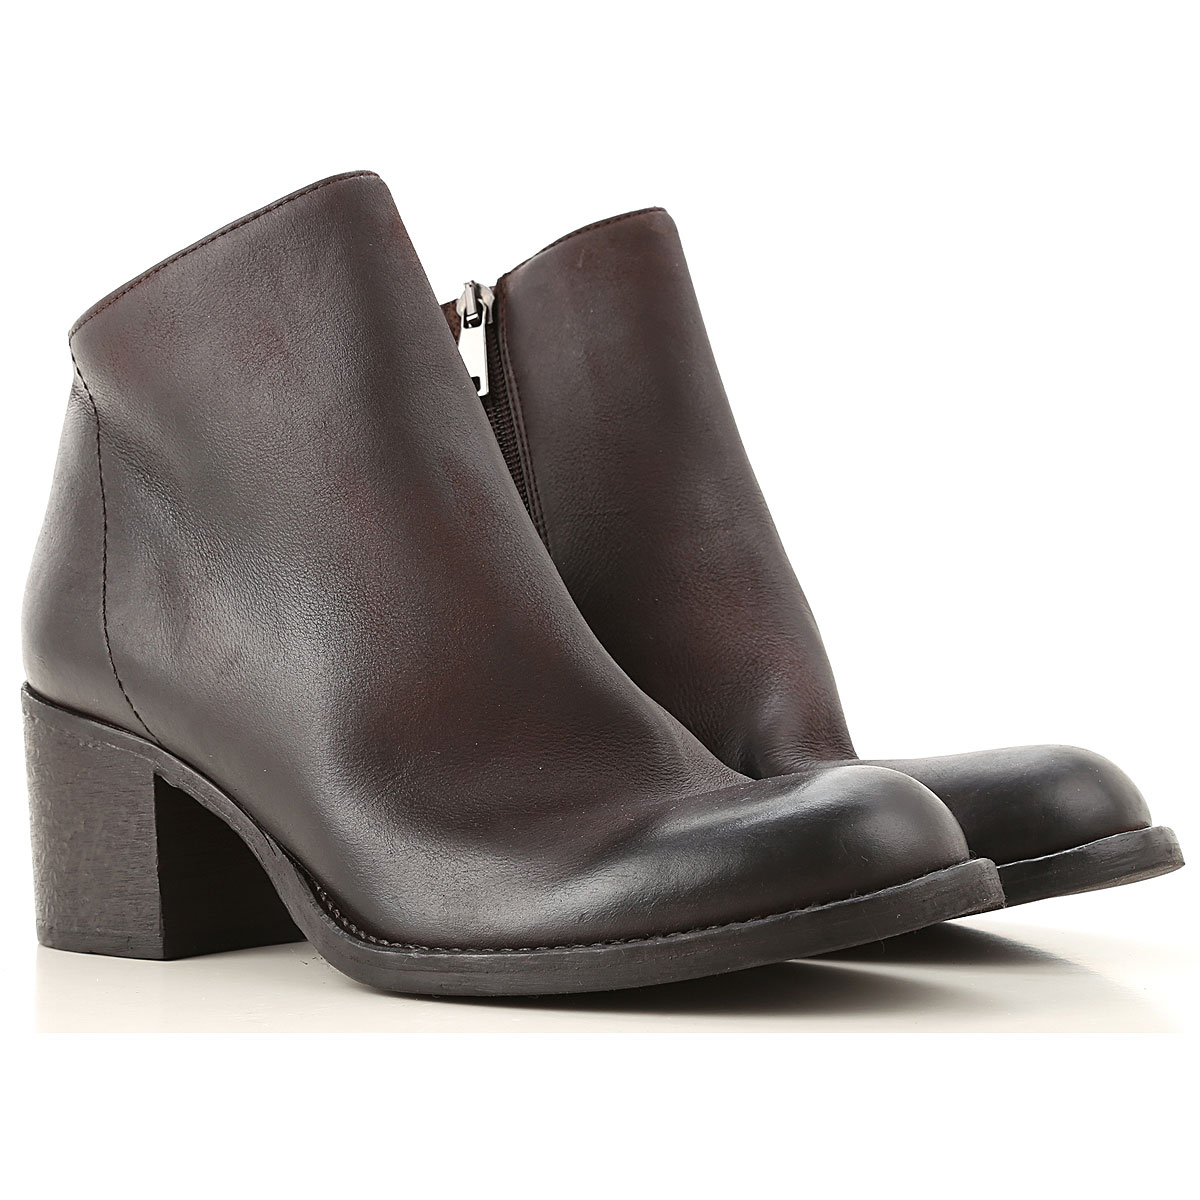 Strategia Boots for Women, Booties On Sale, Dark Brown, Leather, 2019, 6 7 8 9